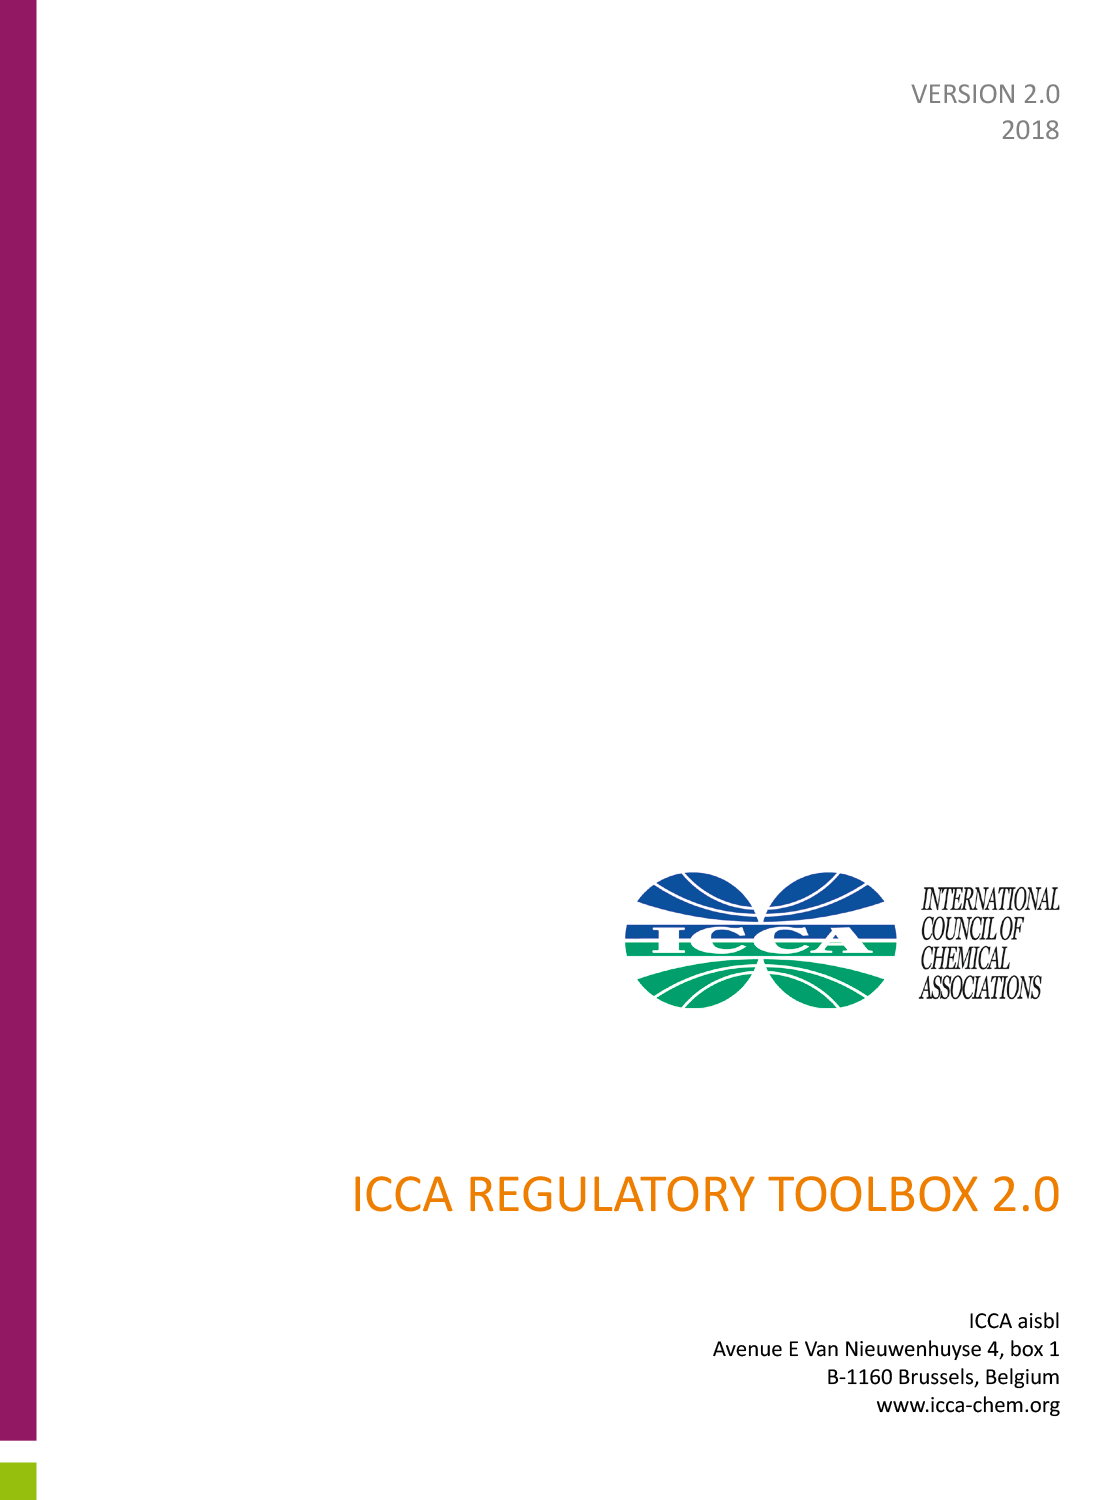 ICCA Regulatory Toolbox Version 2.0